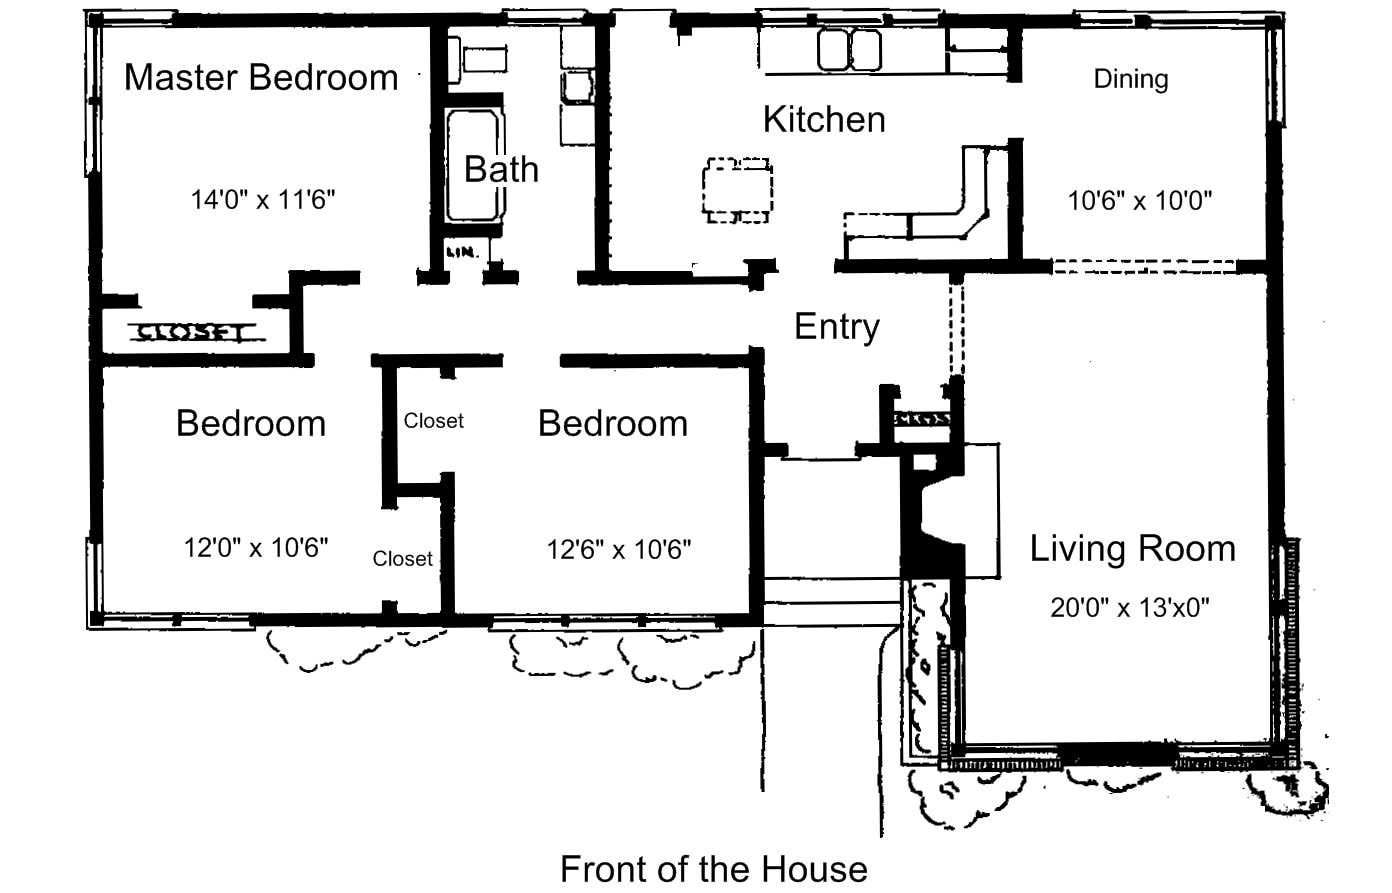 Free floor plans for small houses small house plans smallest house and tiny houses Free house layouts floor plans